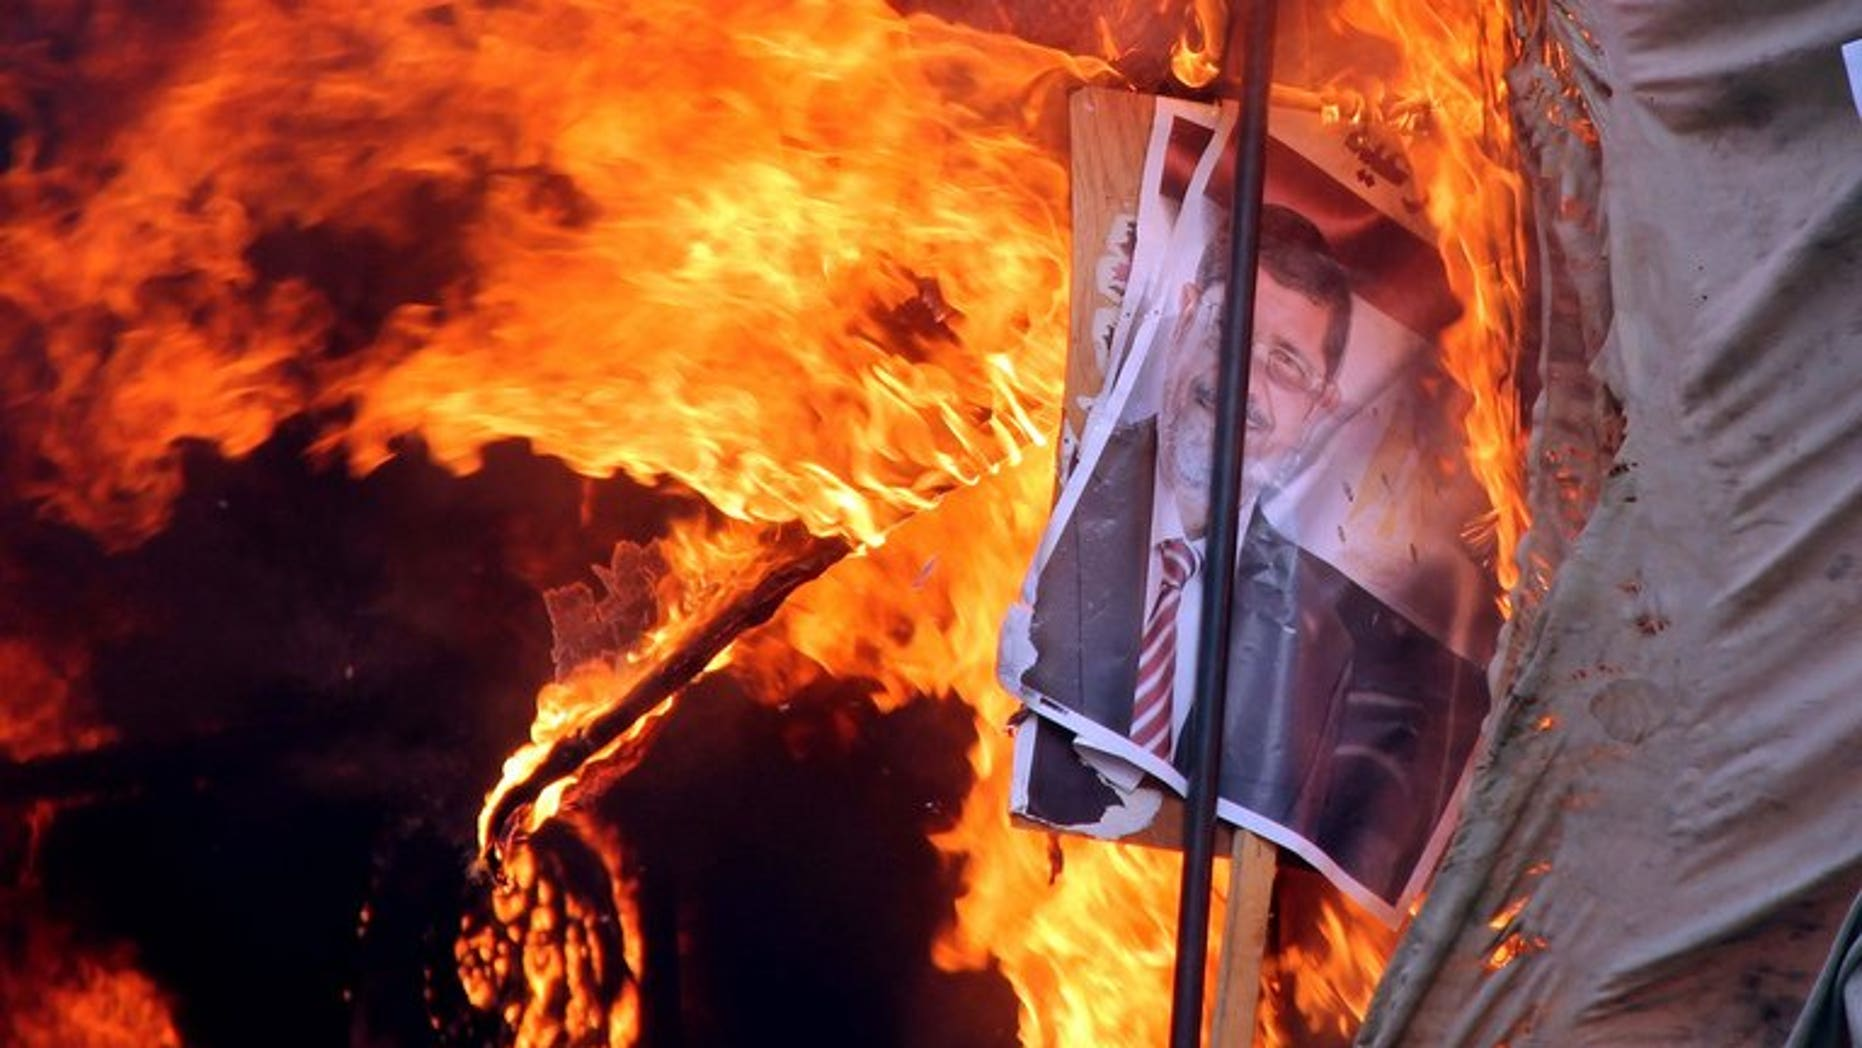 A protest camp is set ablaze after Egyptian police dispersed supporters of ousted president Mohamed Morsi (portrait) from the al-Nahda Square in Cairo, on August 14, 2013. Egyptian Islamist protesters have stormed the Giza governorate headquarters in Cairo, and set it on fire, according to state television.